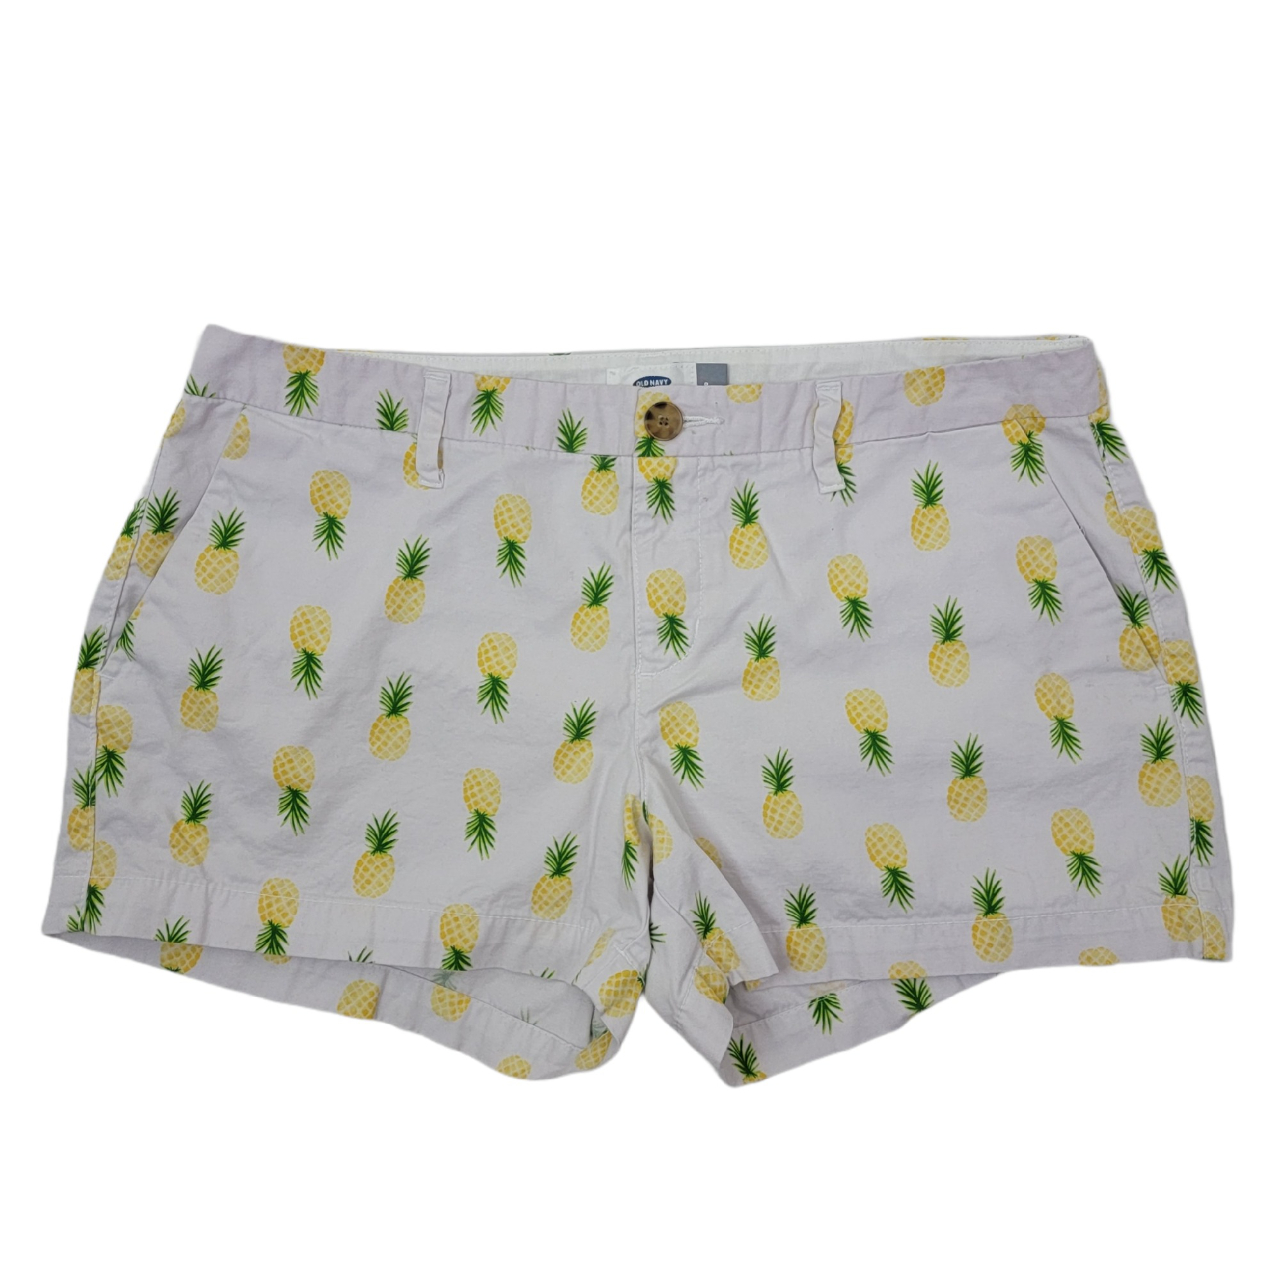 Product Image 1 - Brand: Old Navy Item: Pineapple Shorts Size: